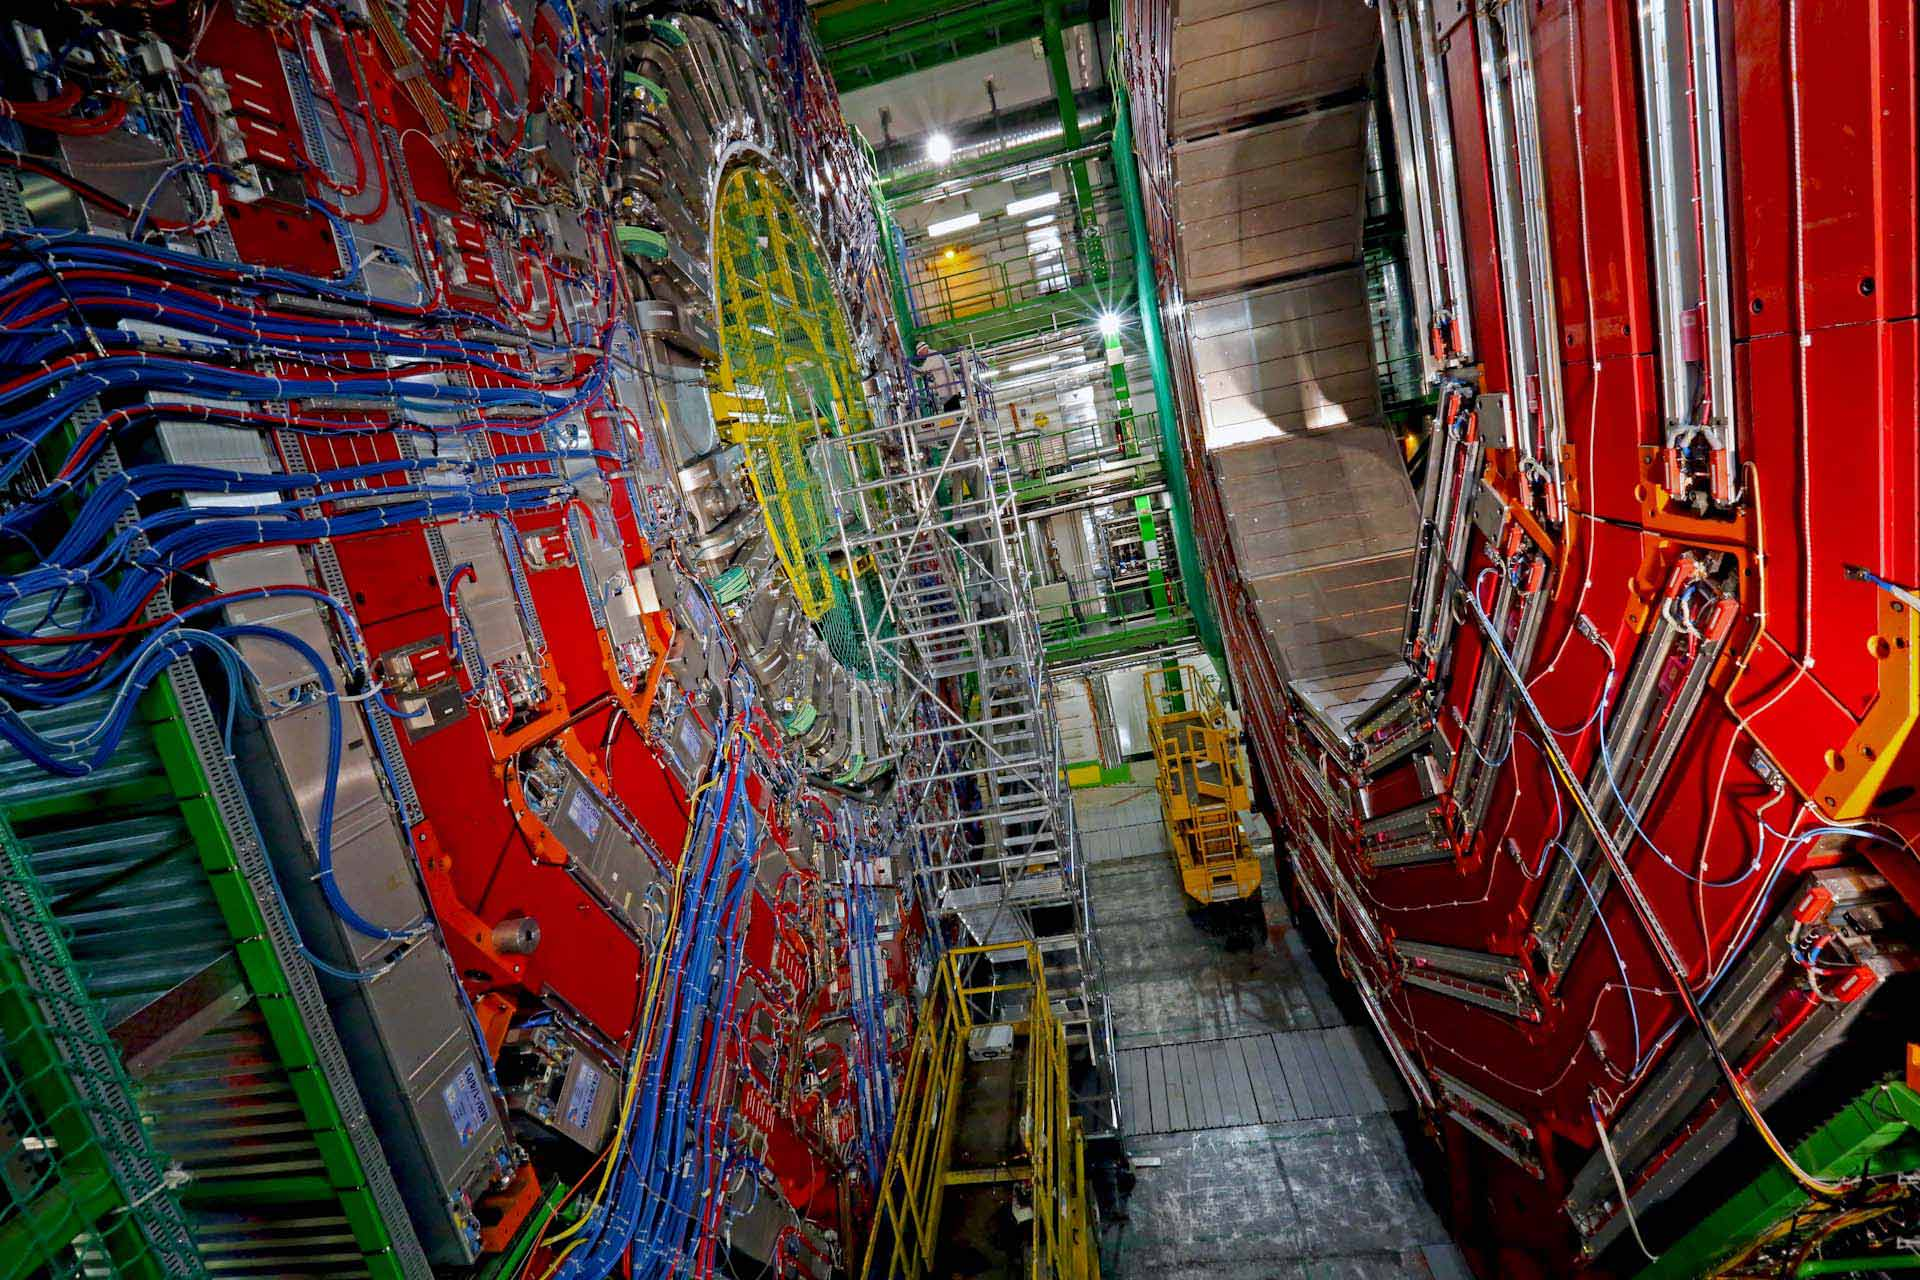 "100 meter depth, infront of the Compact Muon Solenoid (CMS) accelerator. ""The experiment is one of two large general-purpose particle physics detectors built on the Large Hadron Collider (LHC) at CERN in Switzerland and France."" -  ""After the Higgs hype..."" The Guardian 08.11.2013"